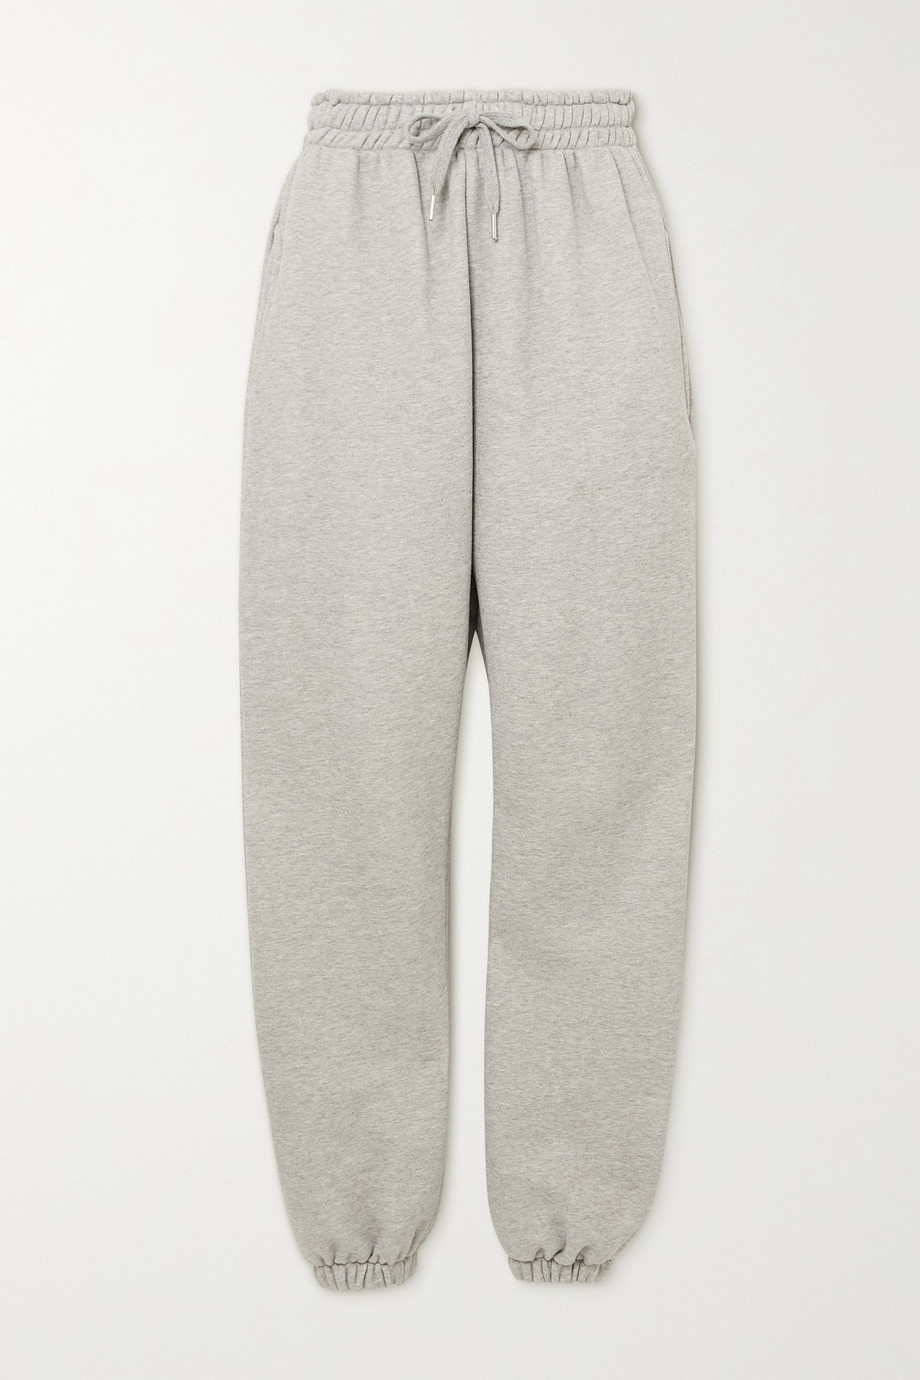 Frankie Shop Vanessa cotton-jersey track pants